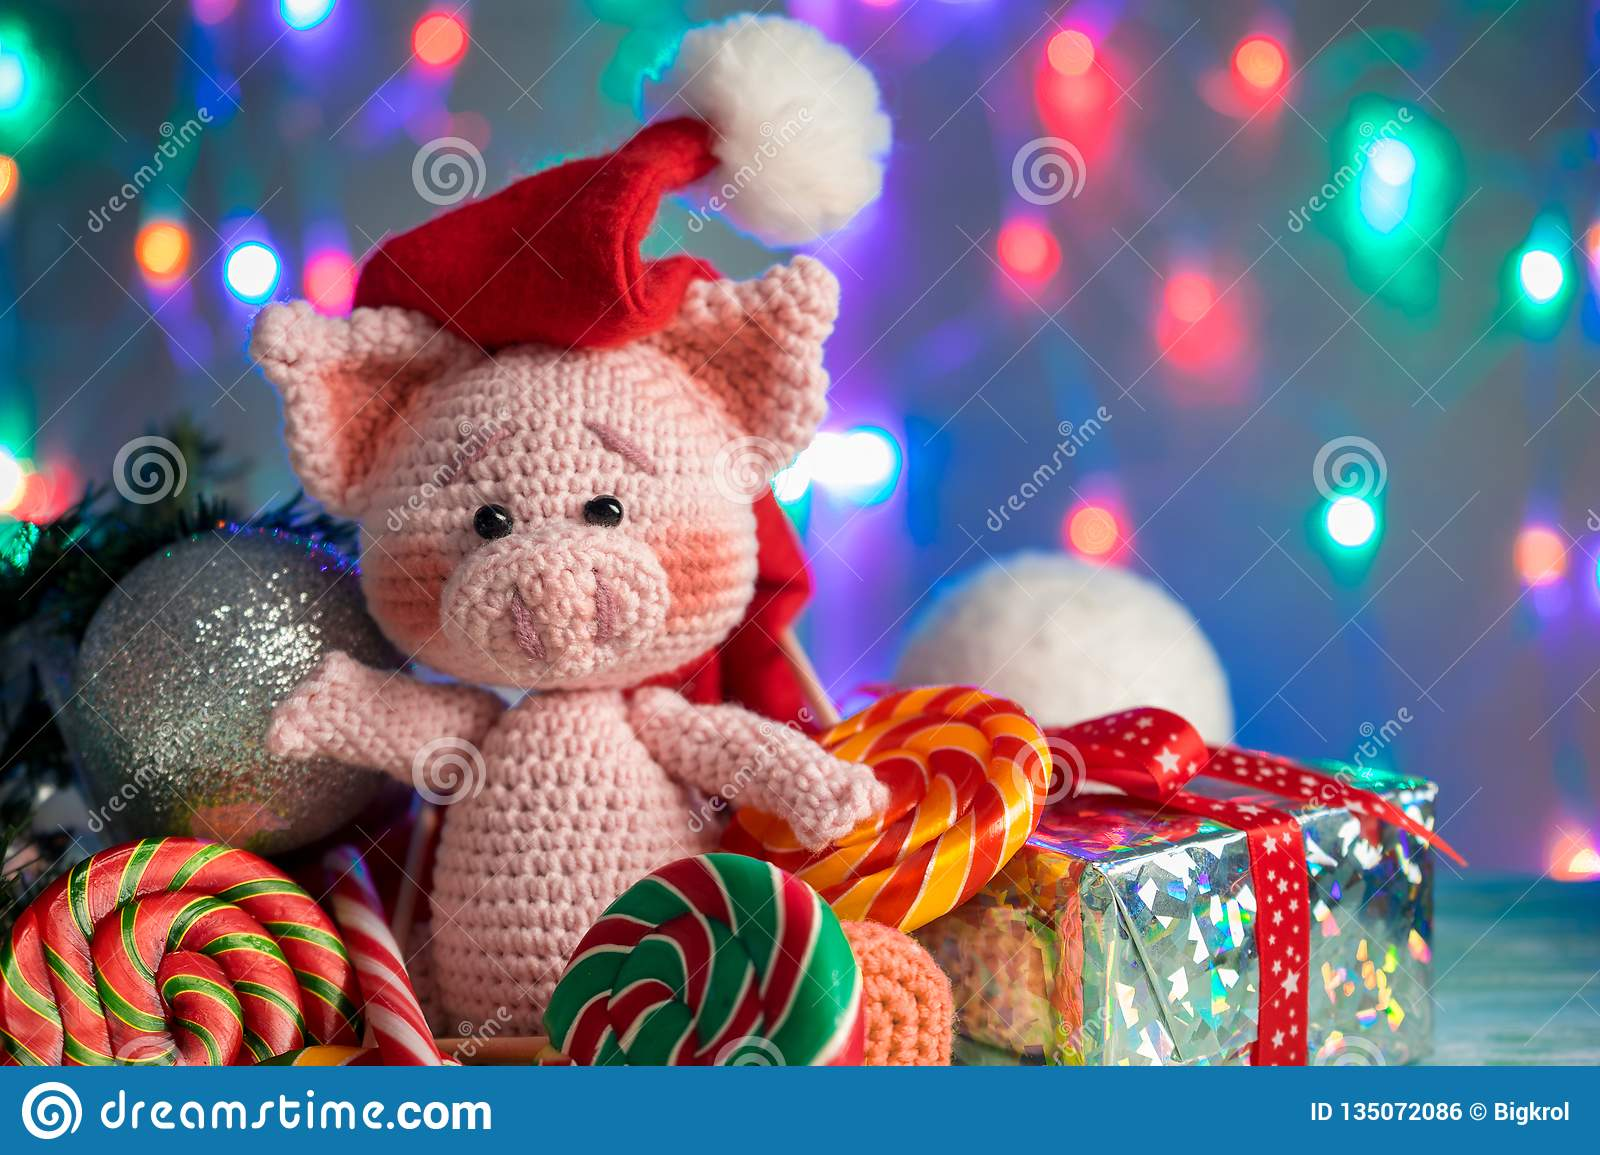 Funny greeting card with new year 2019. Pink pig with lollipops closeup on background with illumination